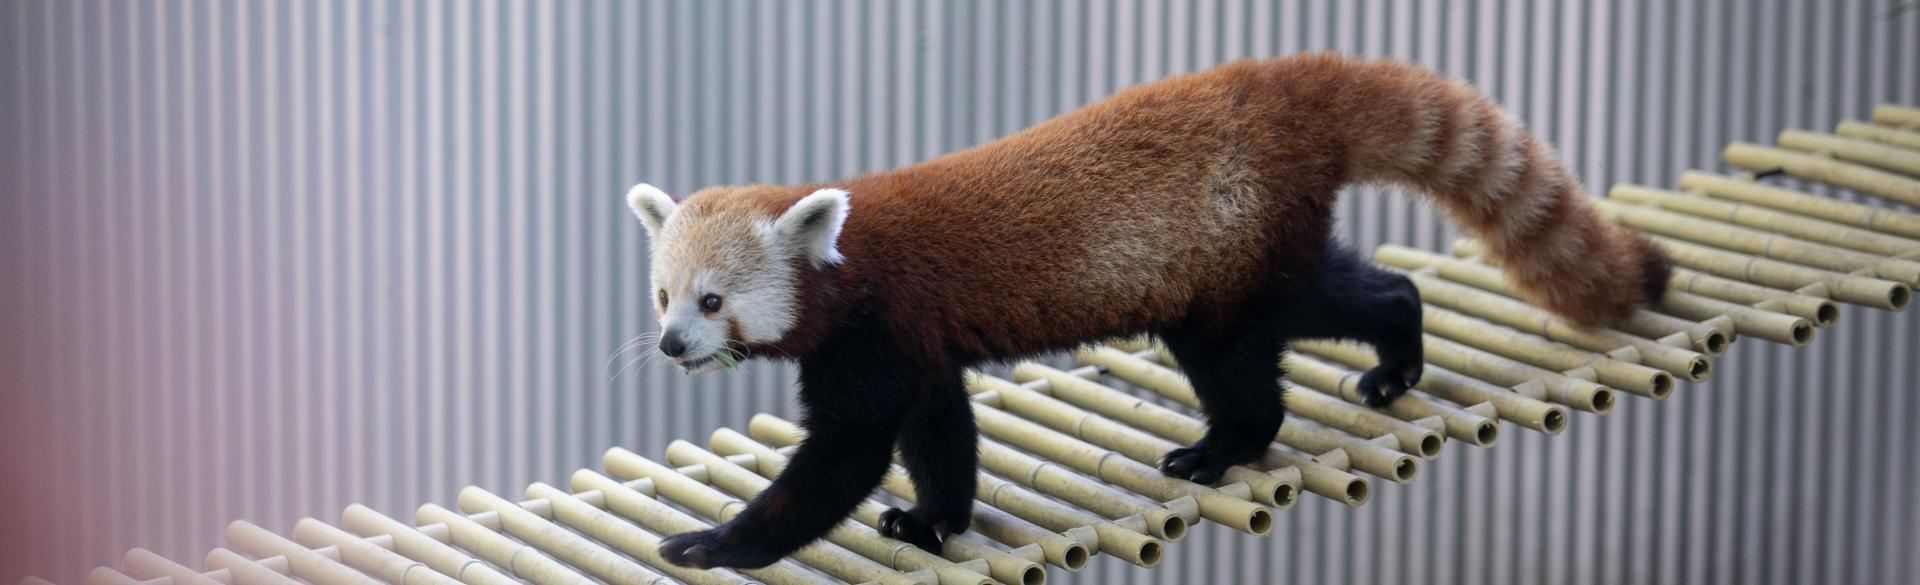 Red Panda exhibit at John Ball Zoo.